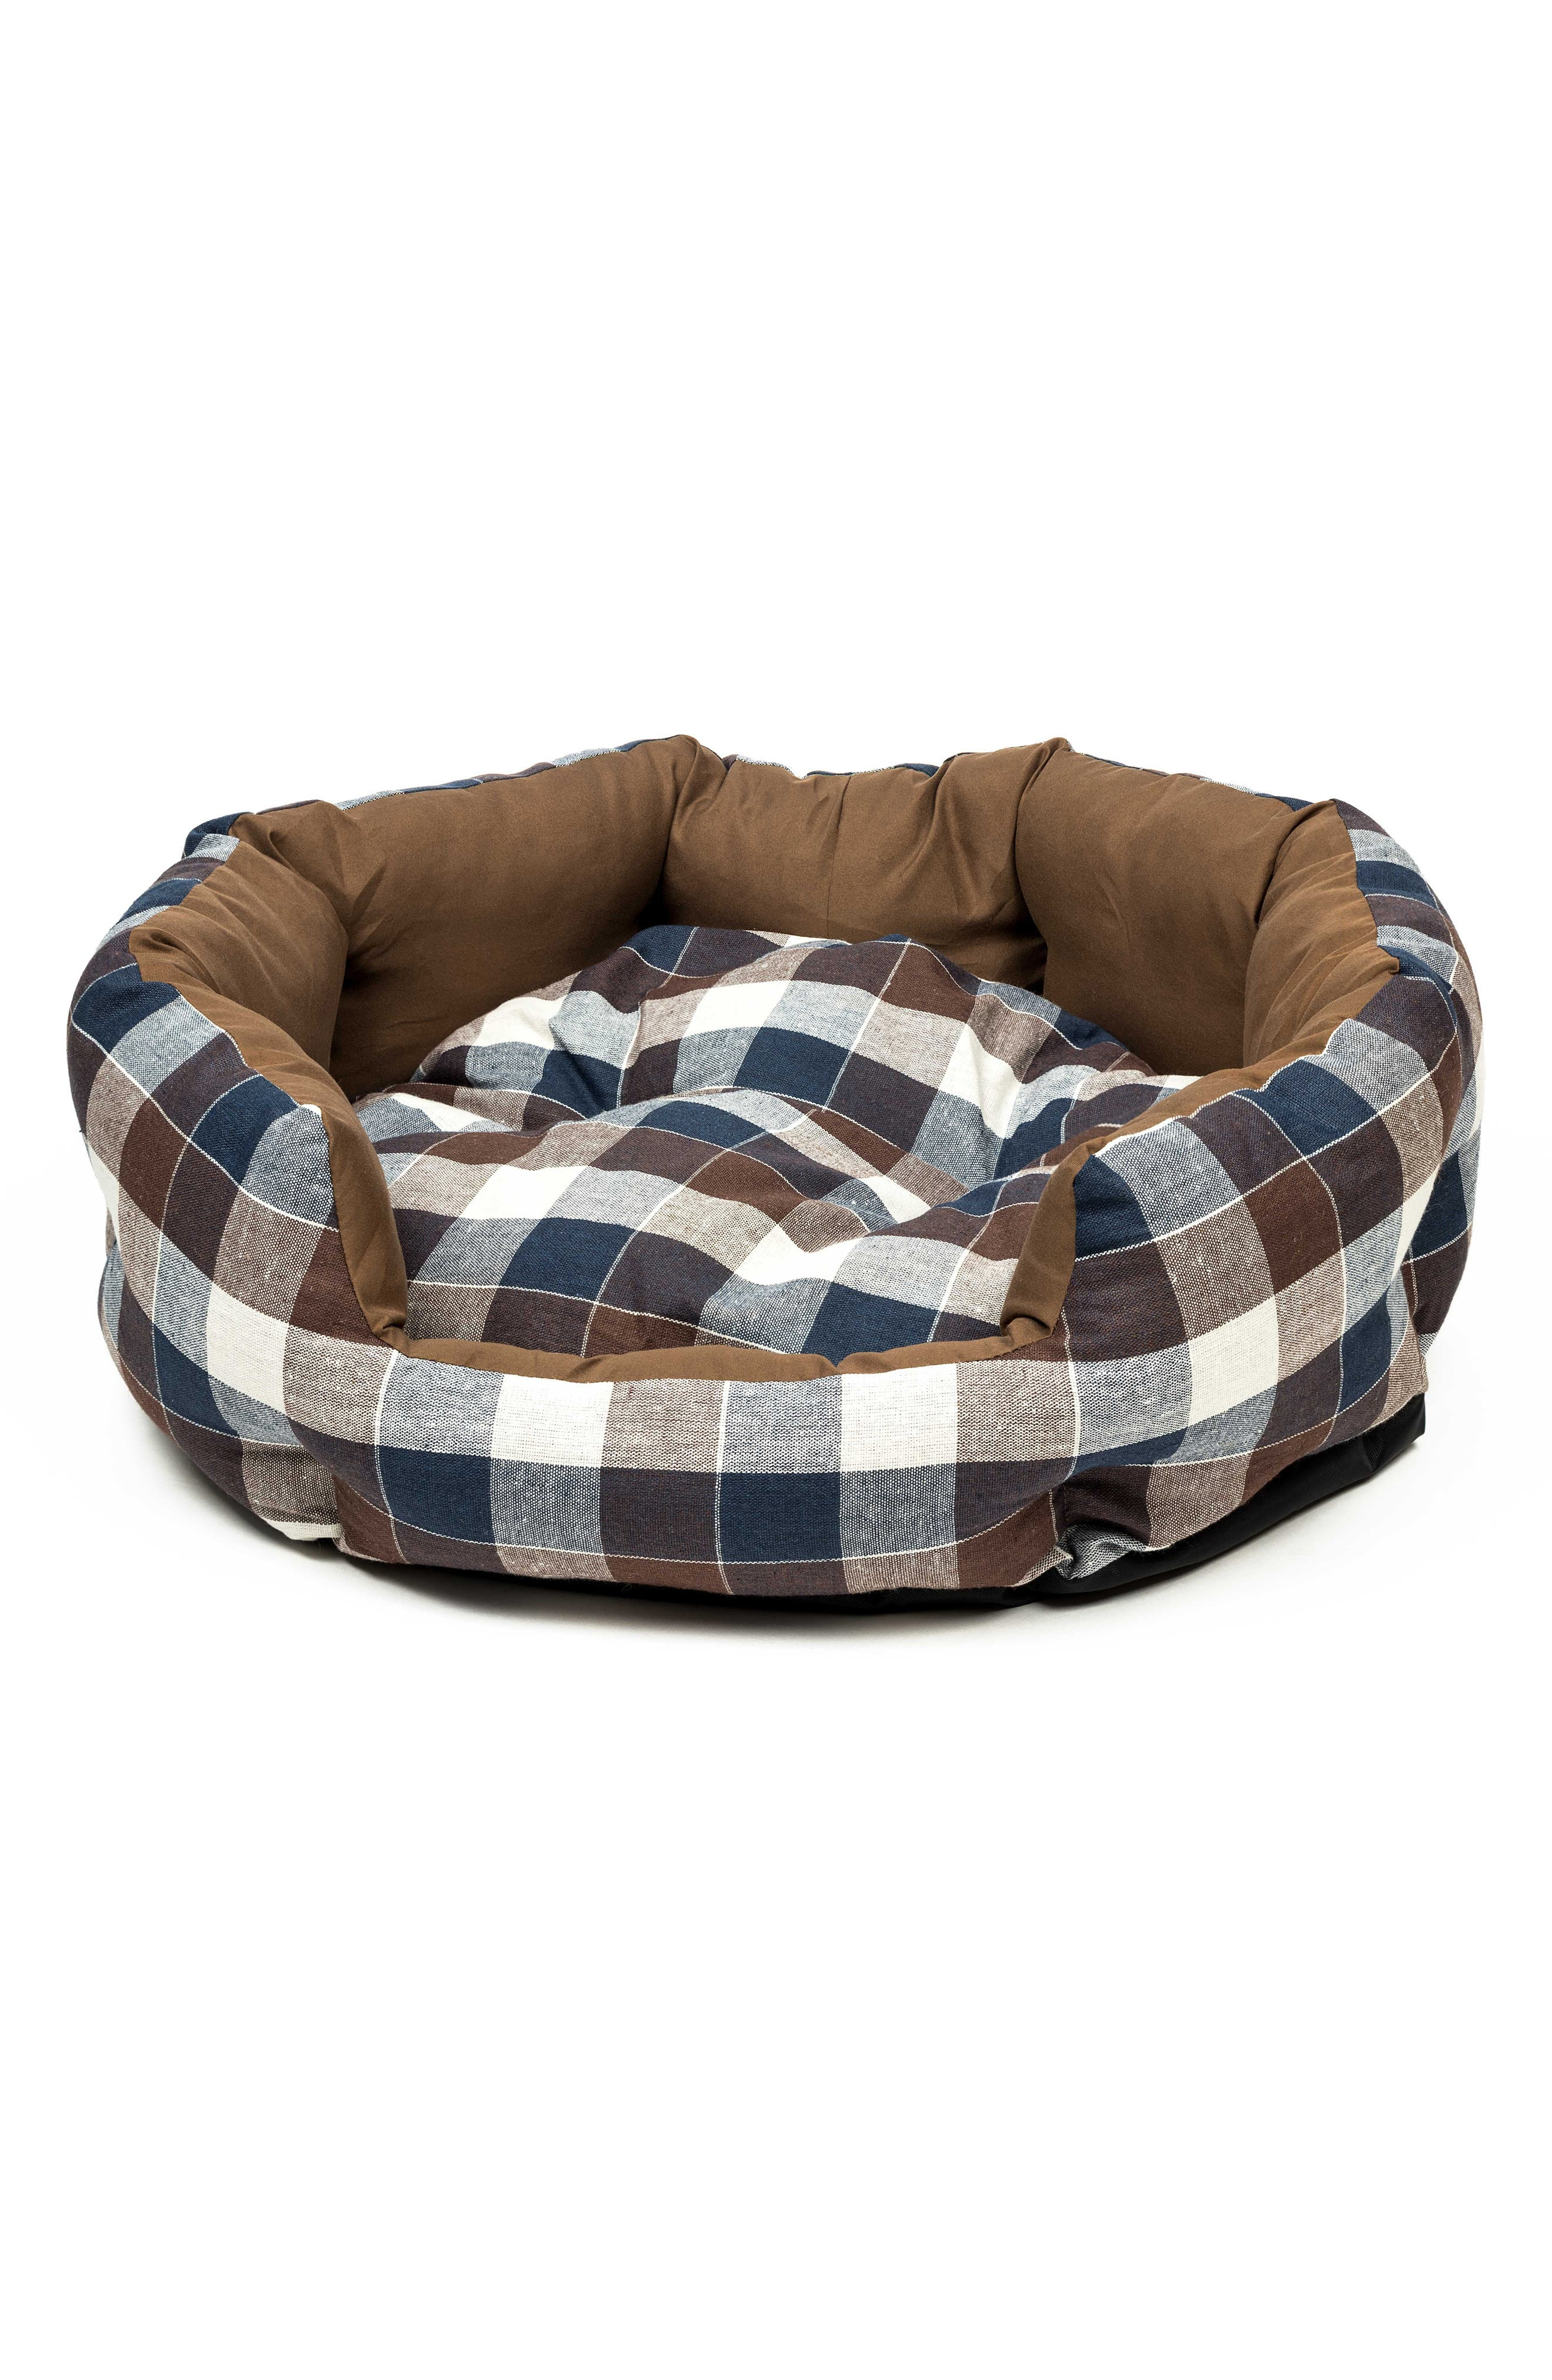 Hasley Round Pet Bed,                         Main,                         color, CHOCOLATE